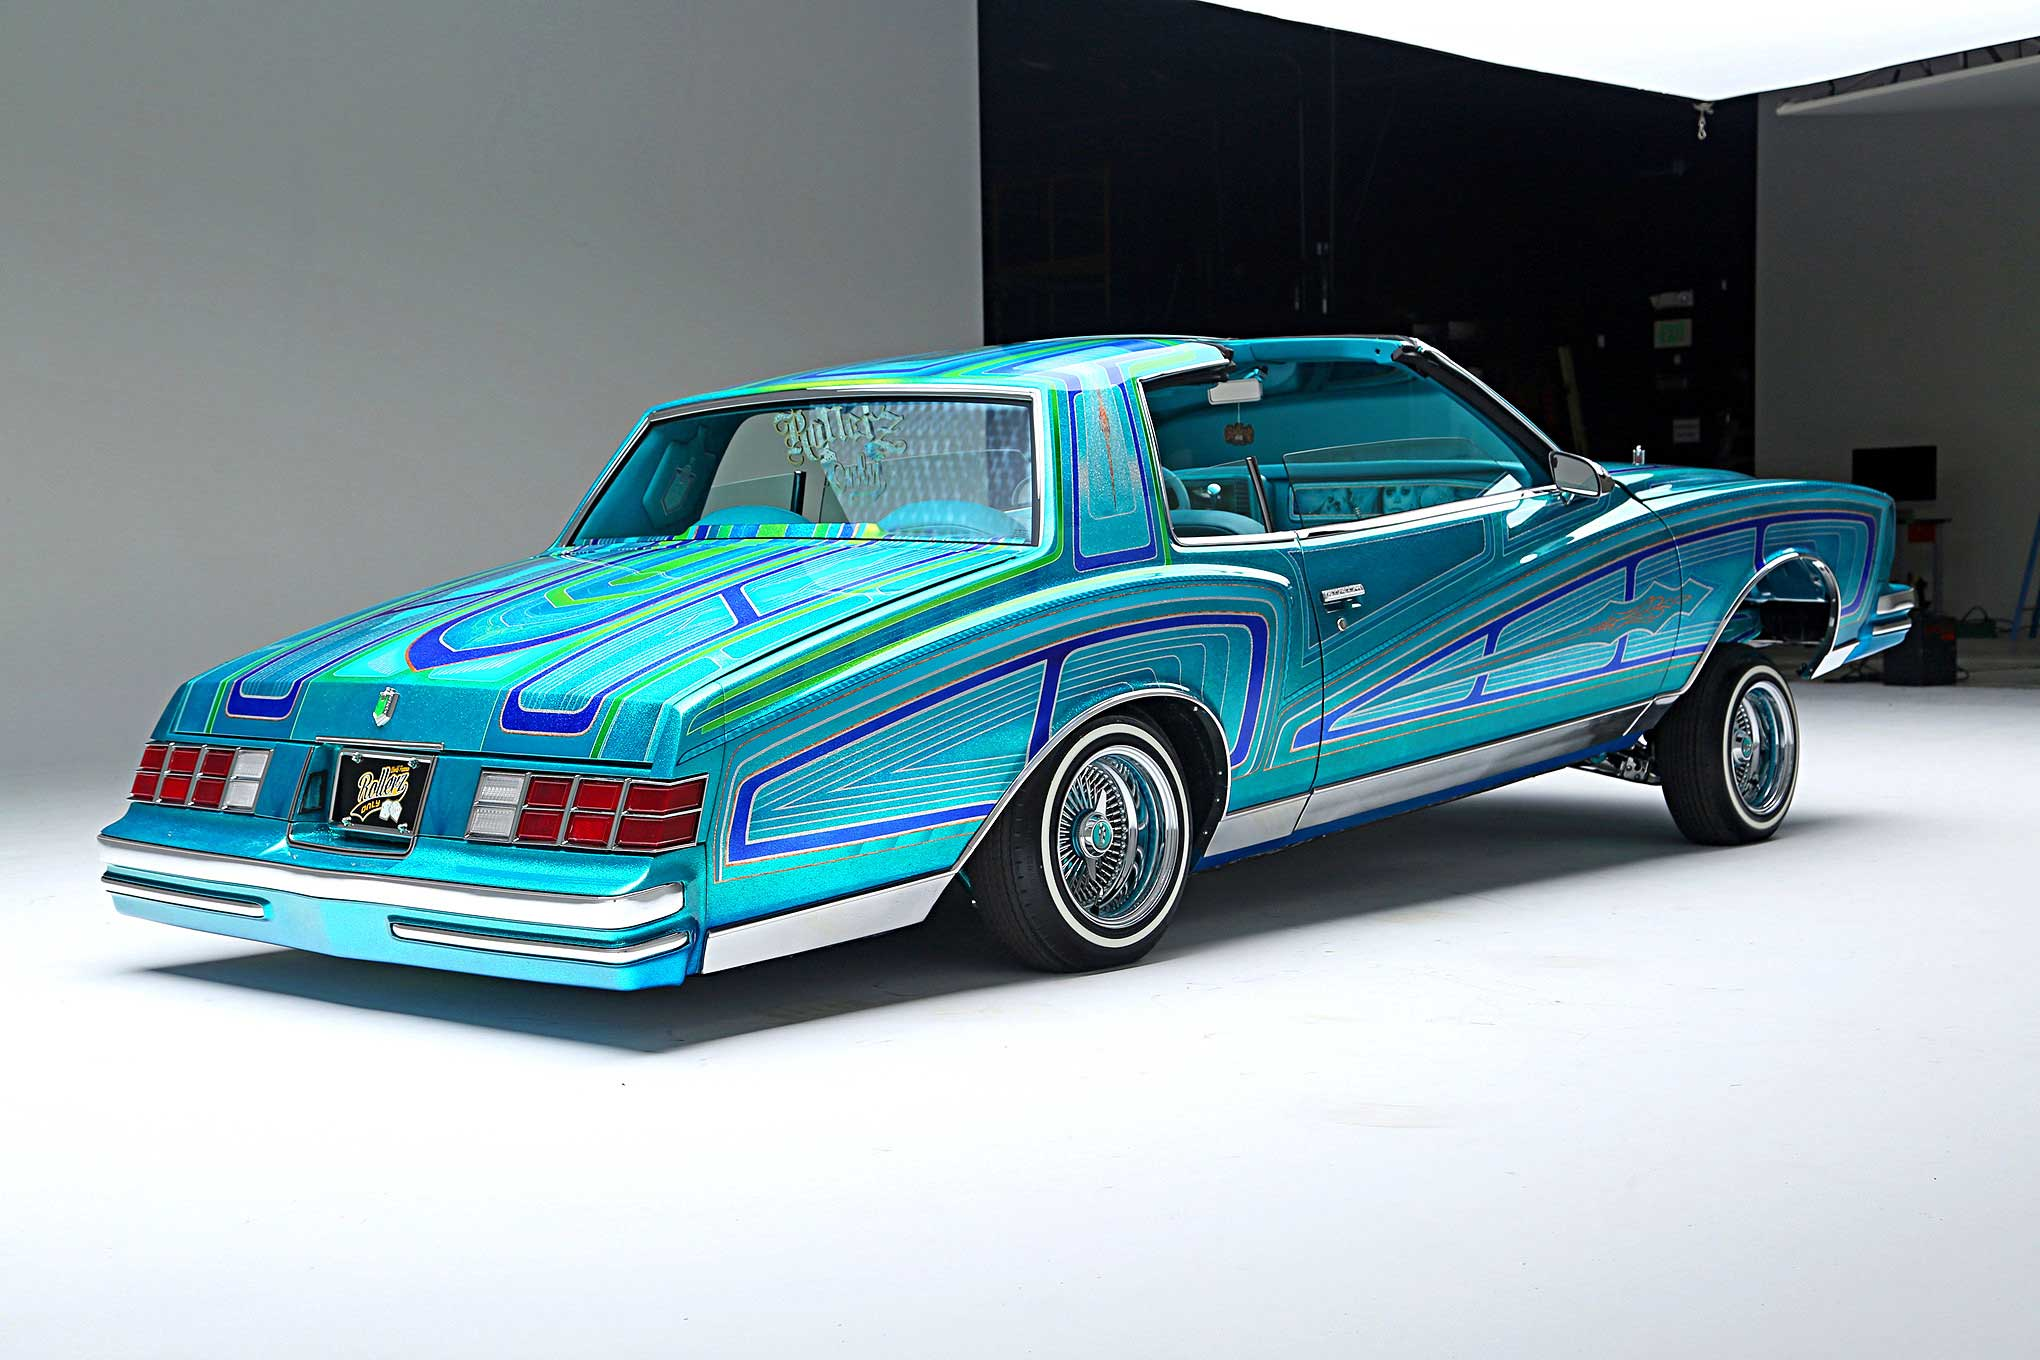 A Comeback With A Clean Surprise For This 1979 Chevy Monte Carlo